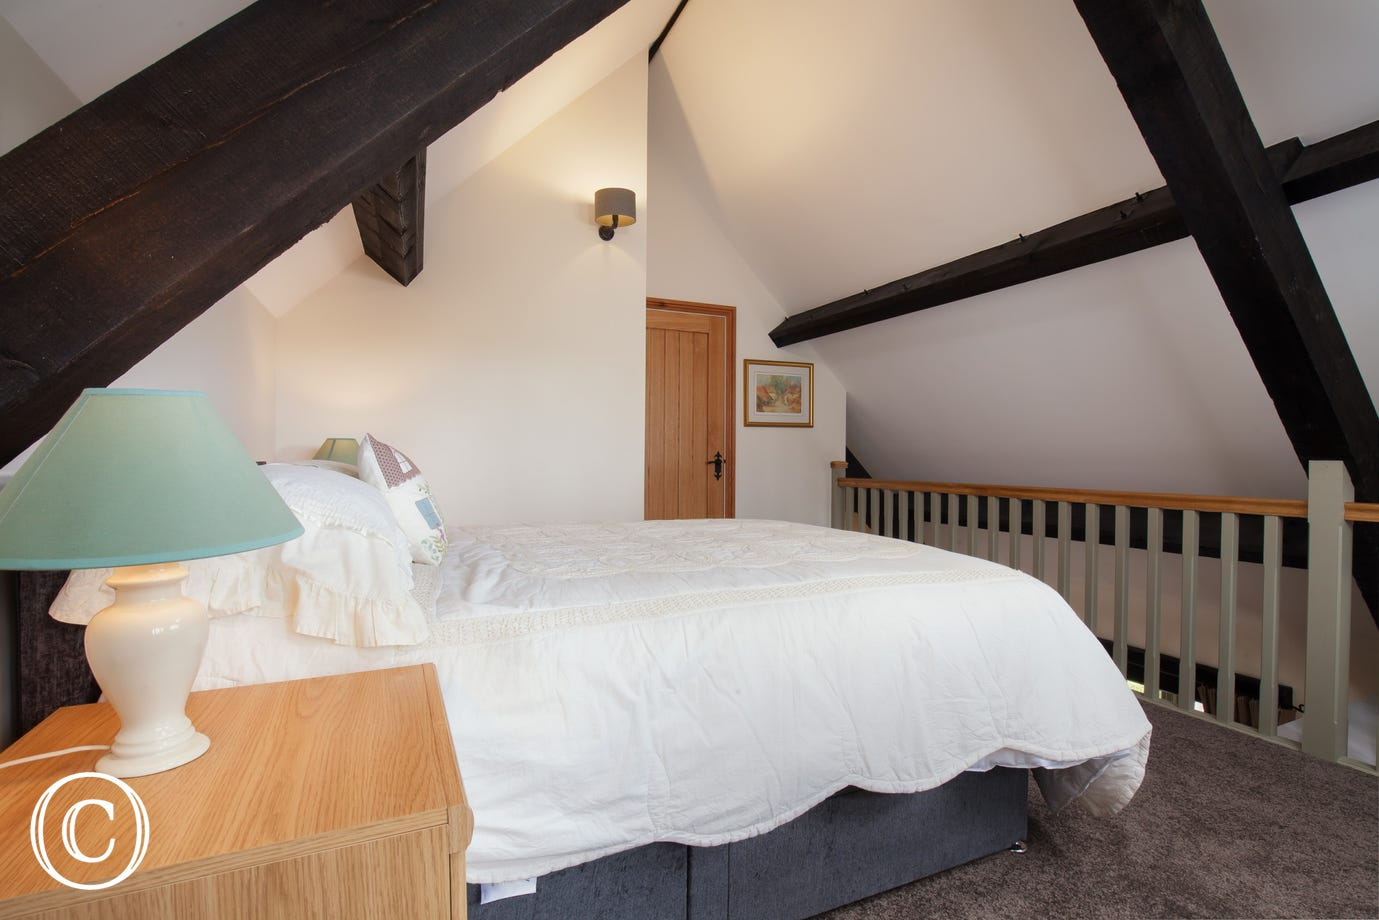 The very best of Cockington Cottages - oozing character and charm with exposed beams